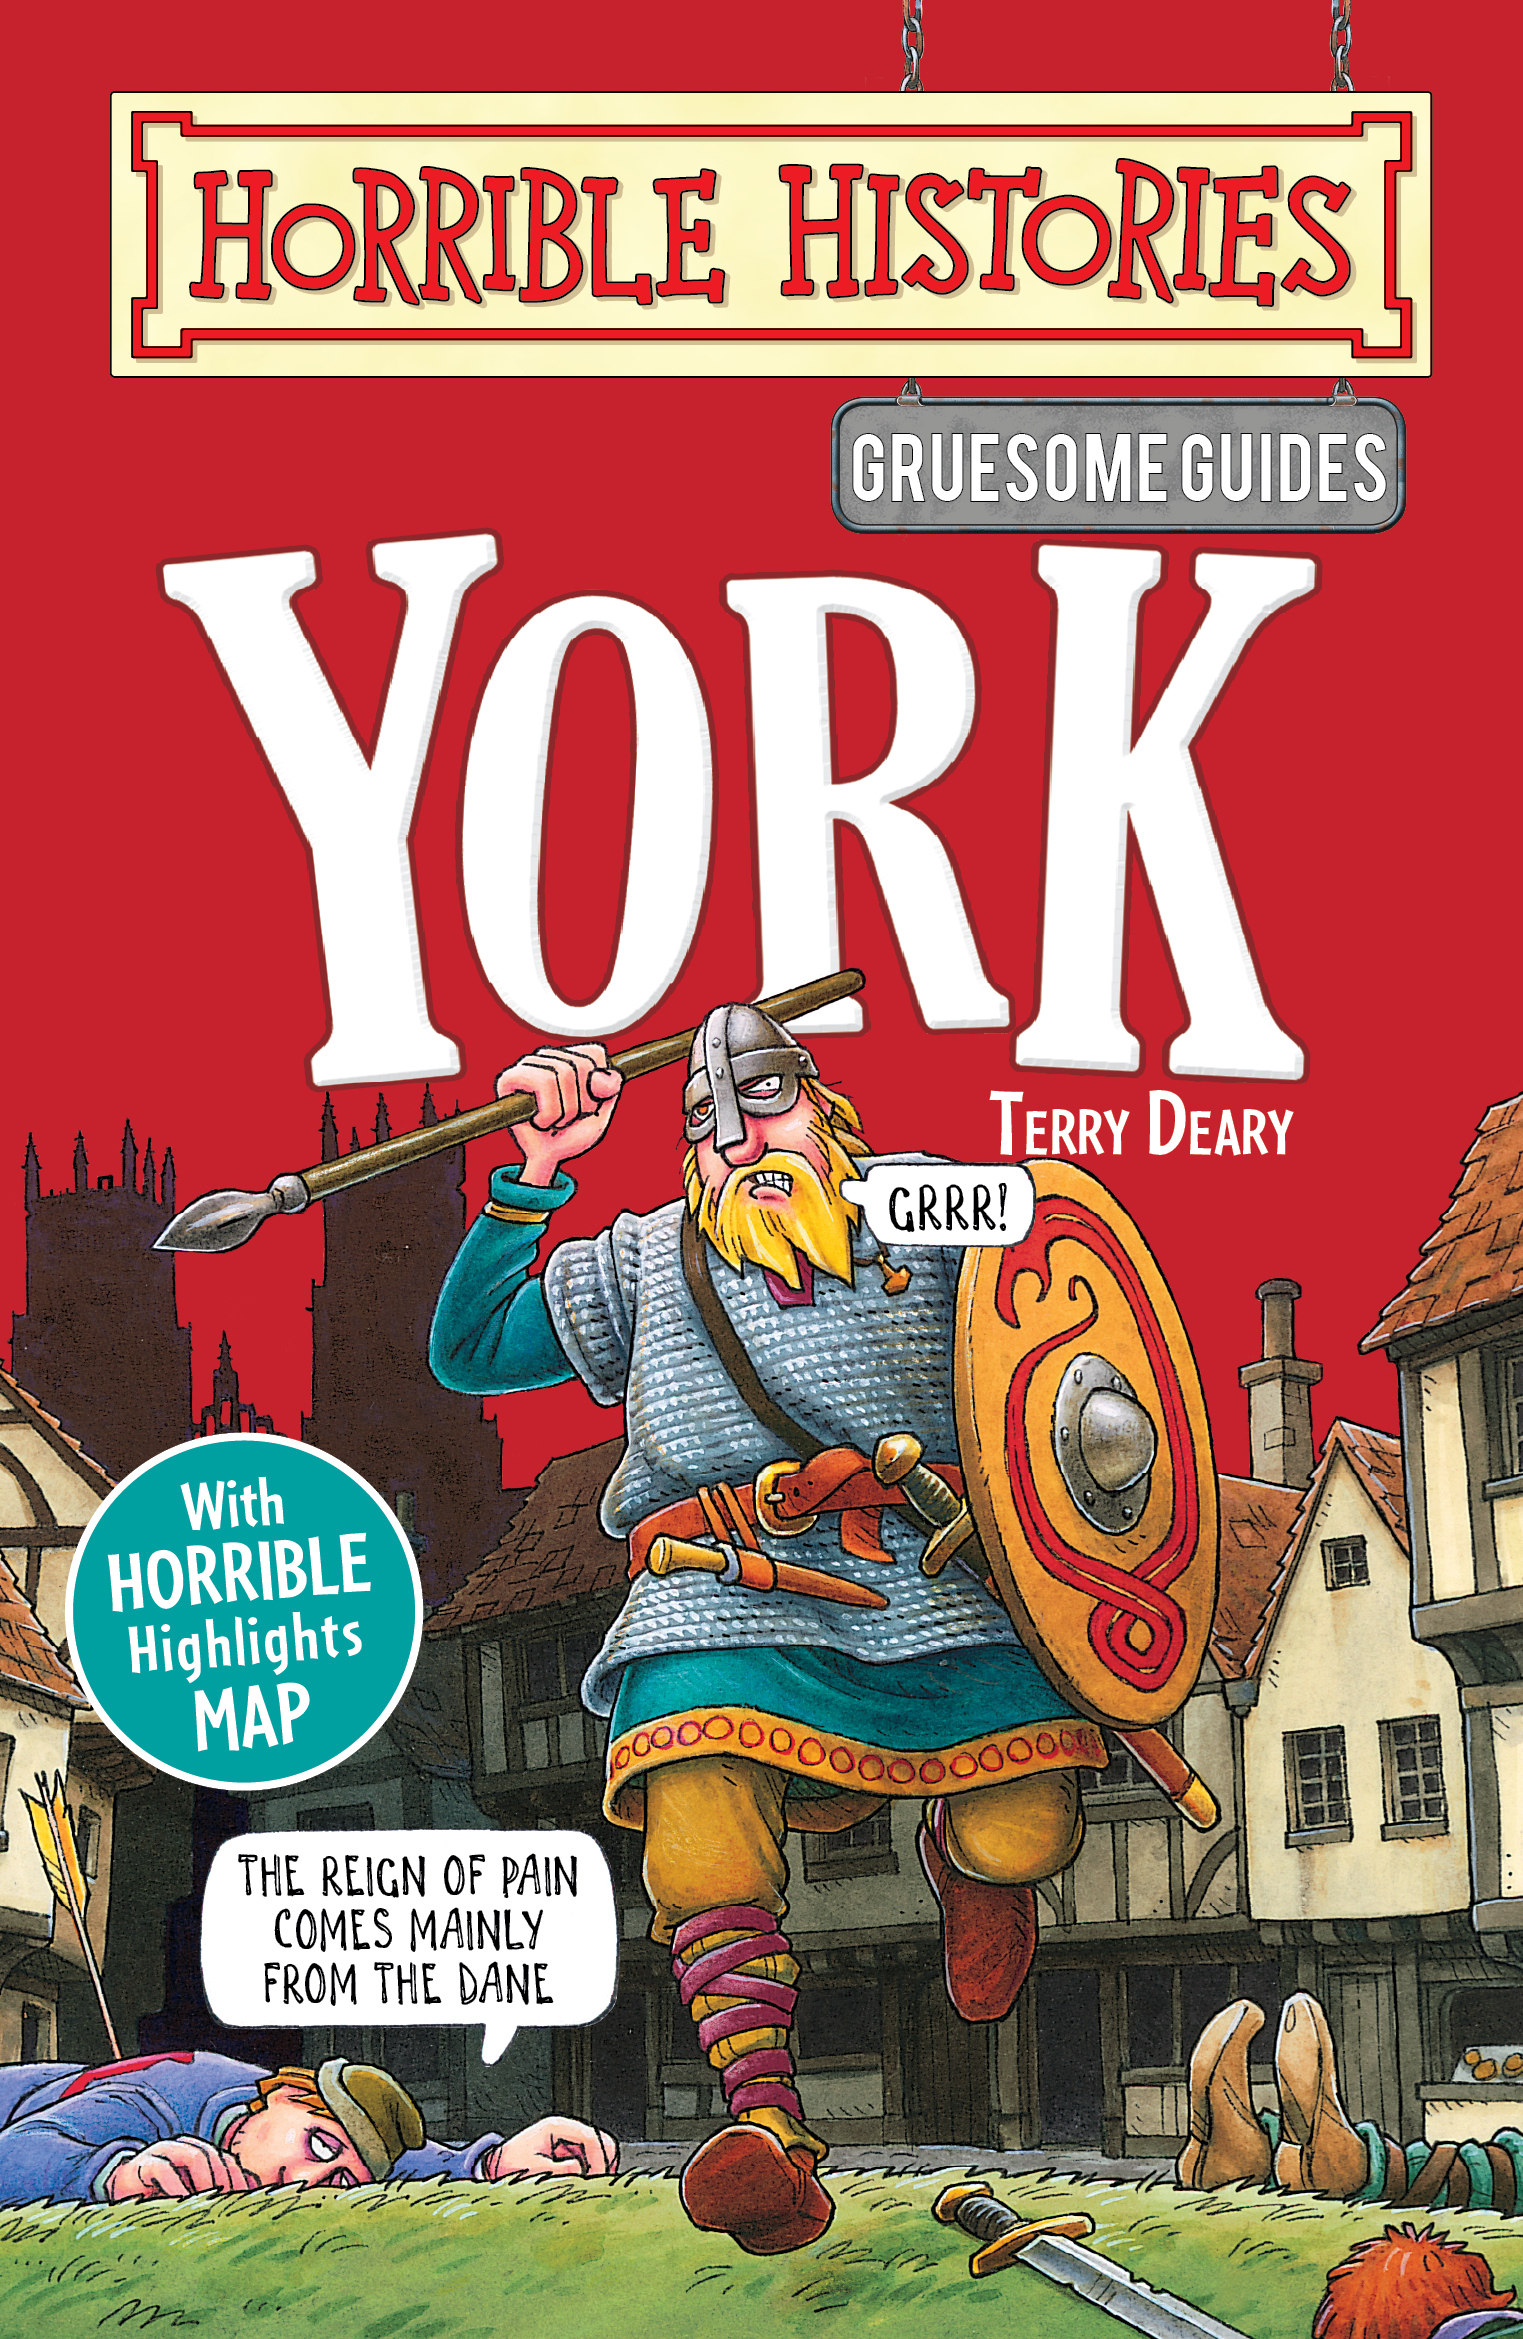 Gruesome Guides: York